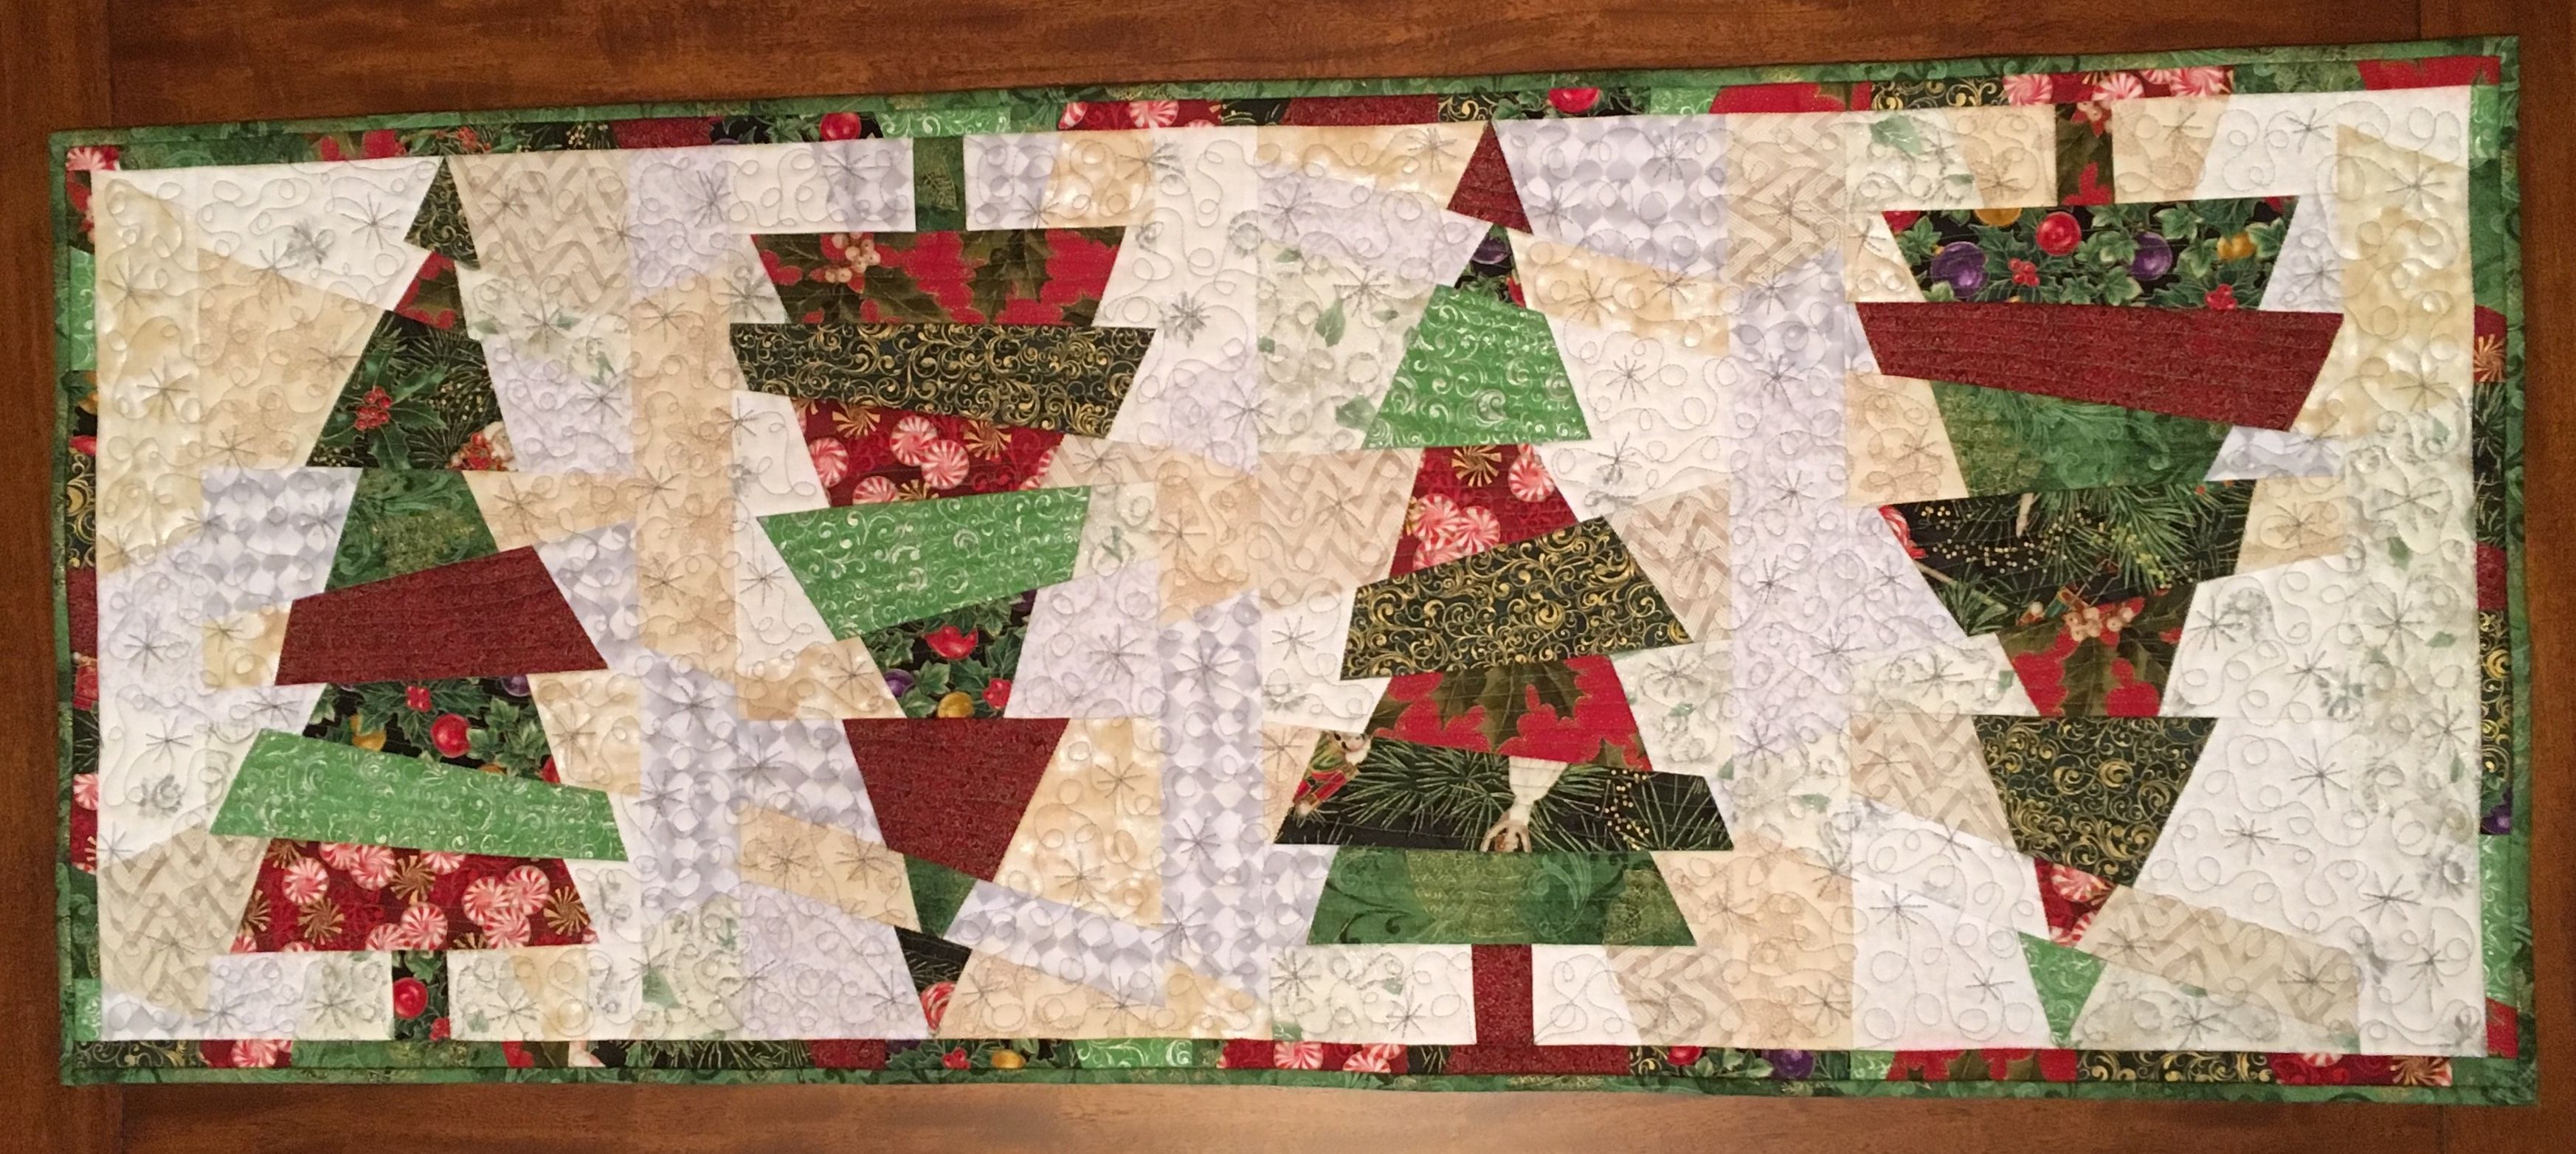 Crazy Christmas Tree Pattern By Karla Alexander Pieced And Sit Down Machine Quilted By Wendy John Christmas Tree Quilt Modern Christmas Quilt Christmas Quilts